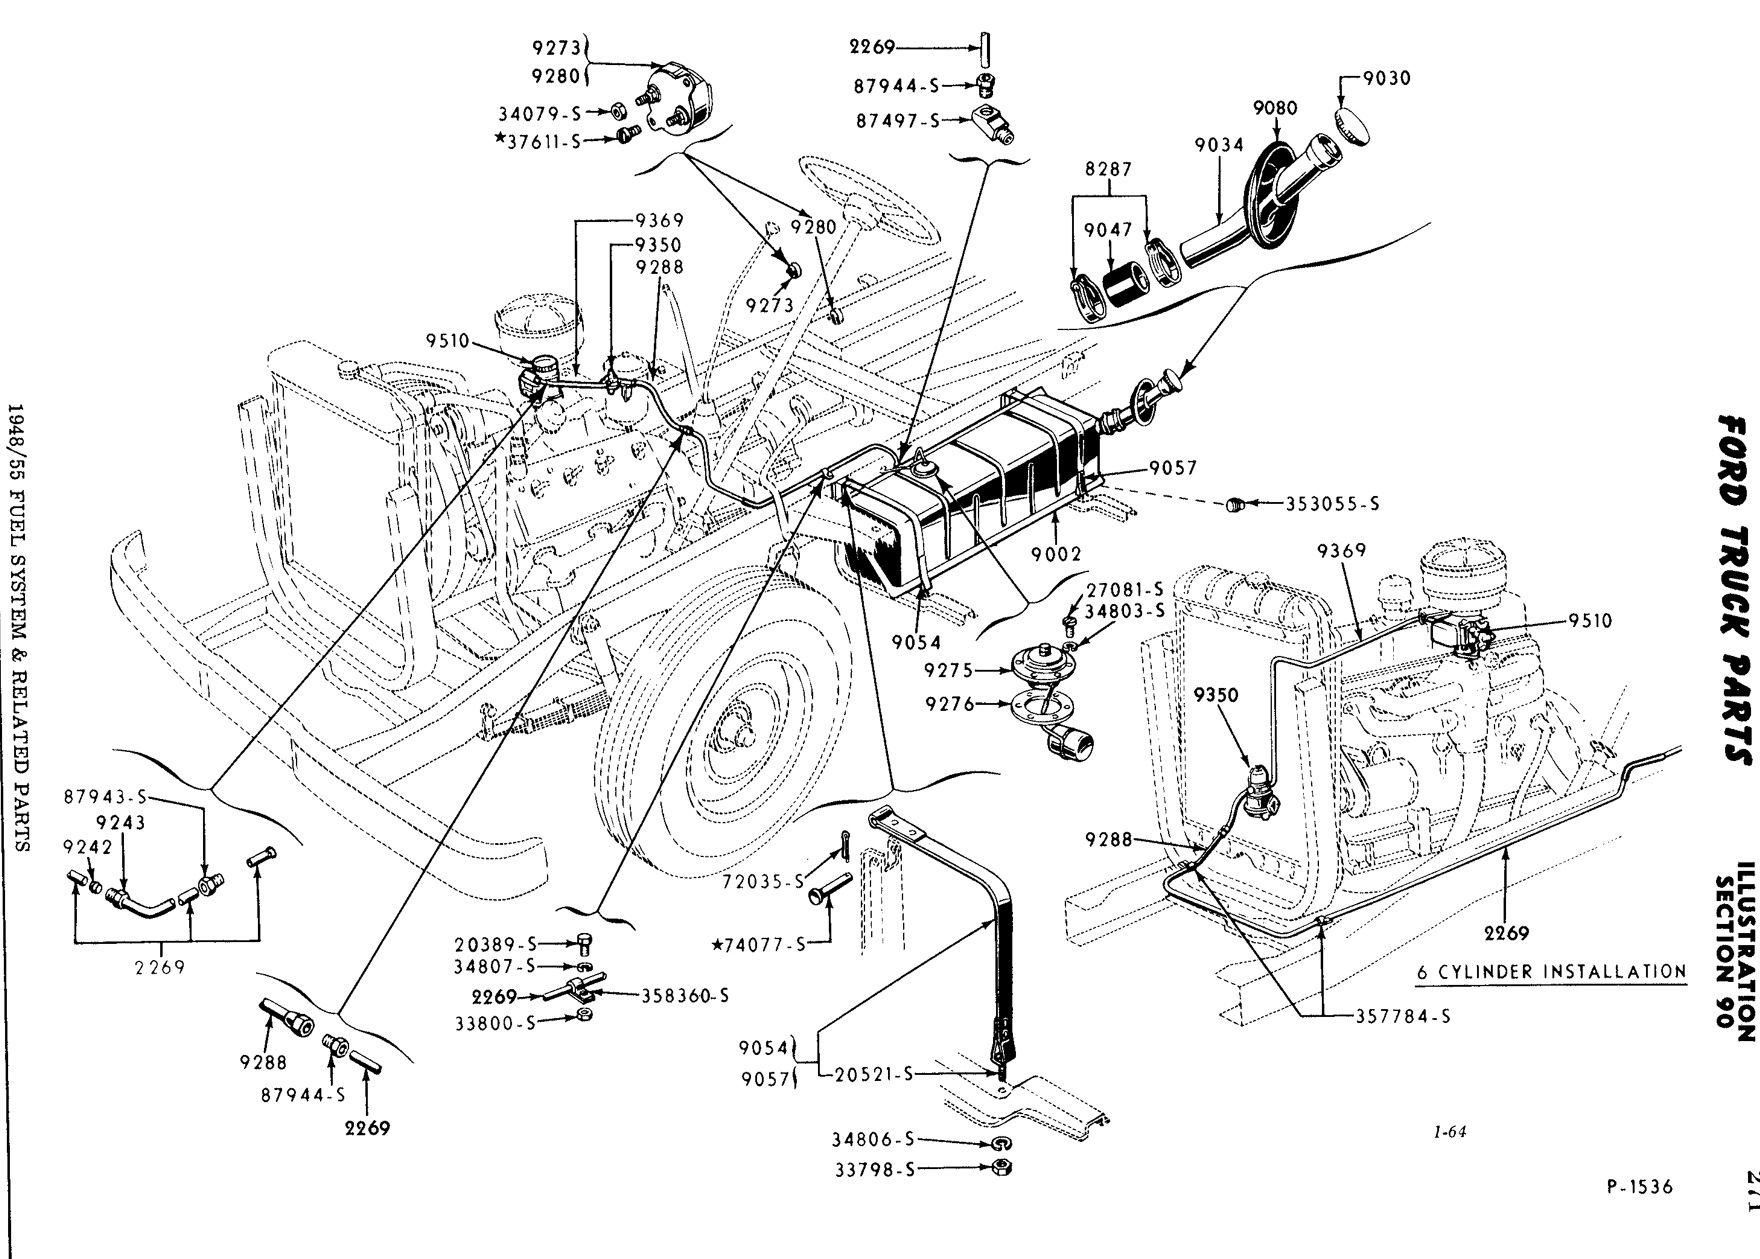 Corvette Wiring Diagram. Corvette. Wiring Diagram Images